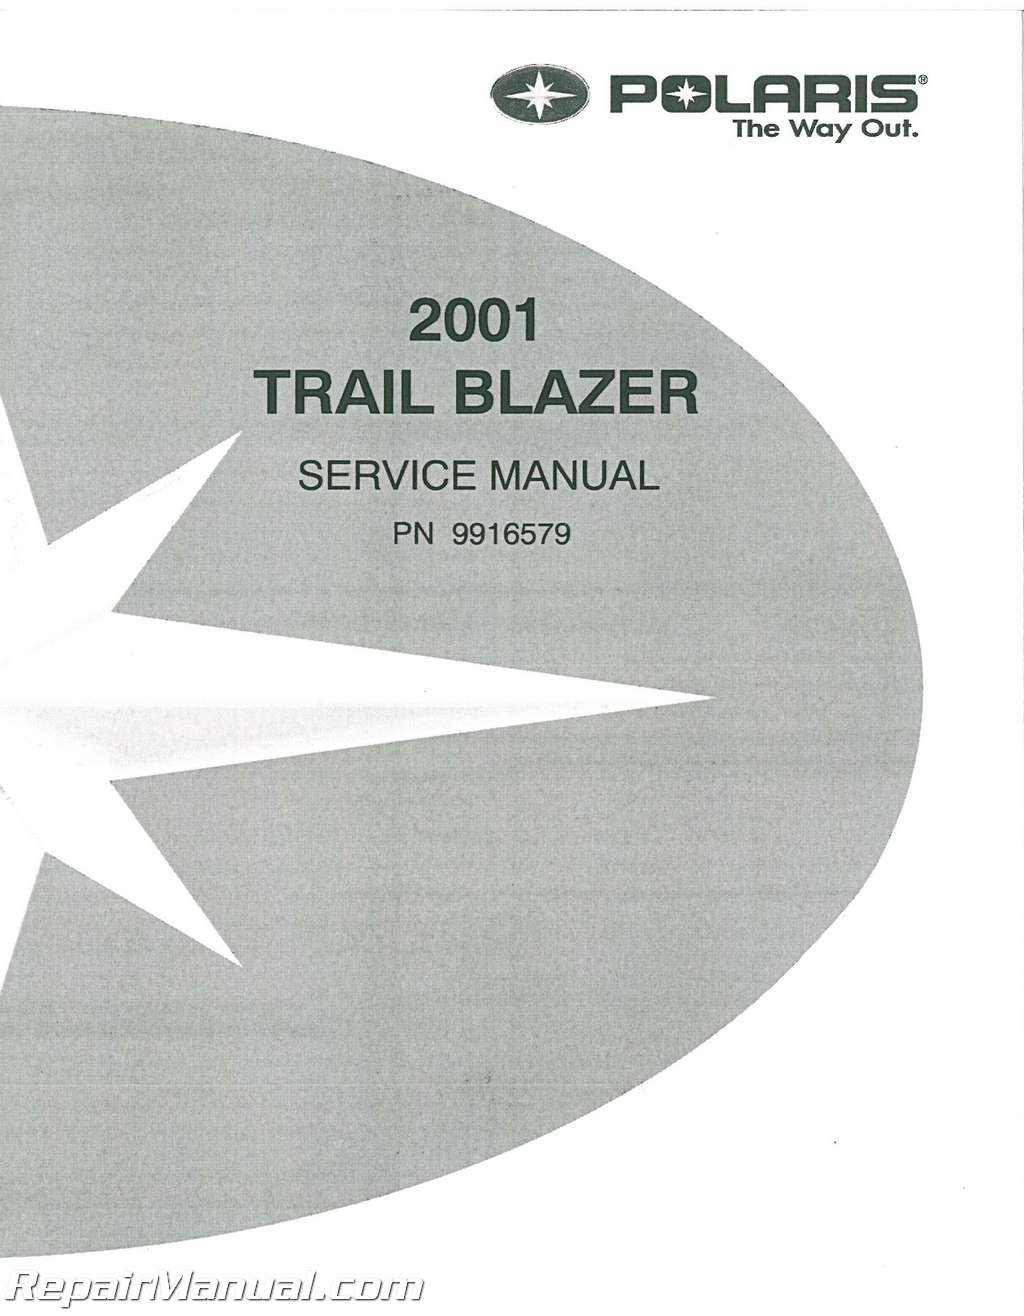 9916579 2001 Polaris Trail Blazer 250 ATV Service Manual: Manufacturer:  Amazon.com: Books